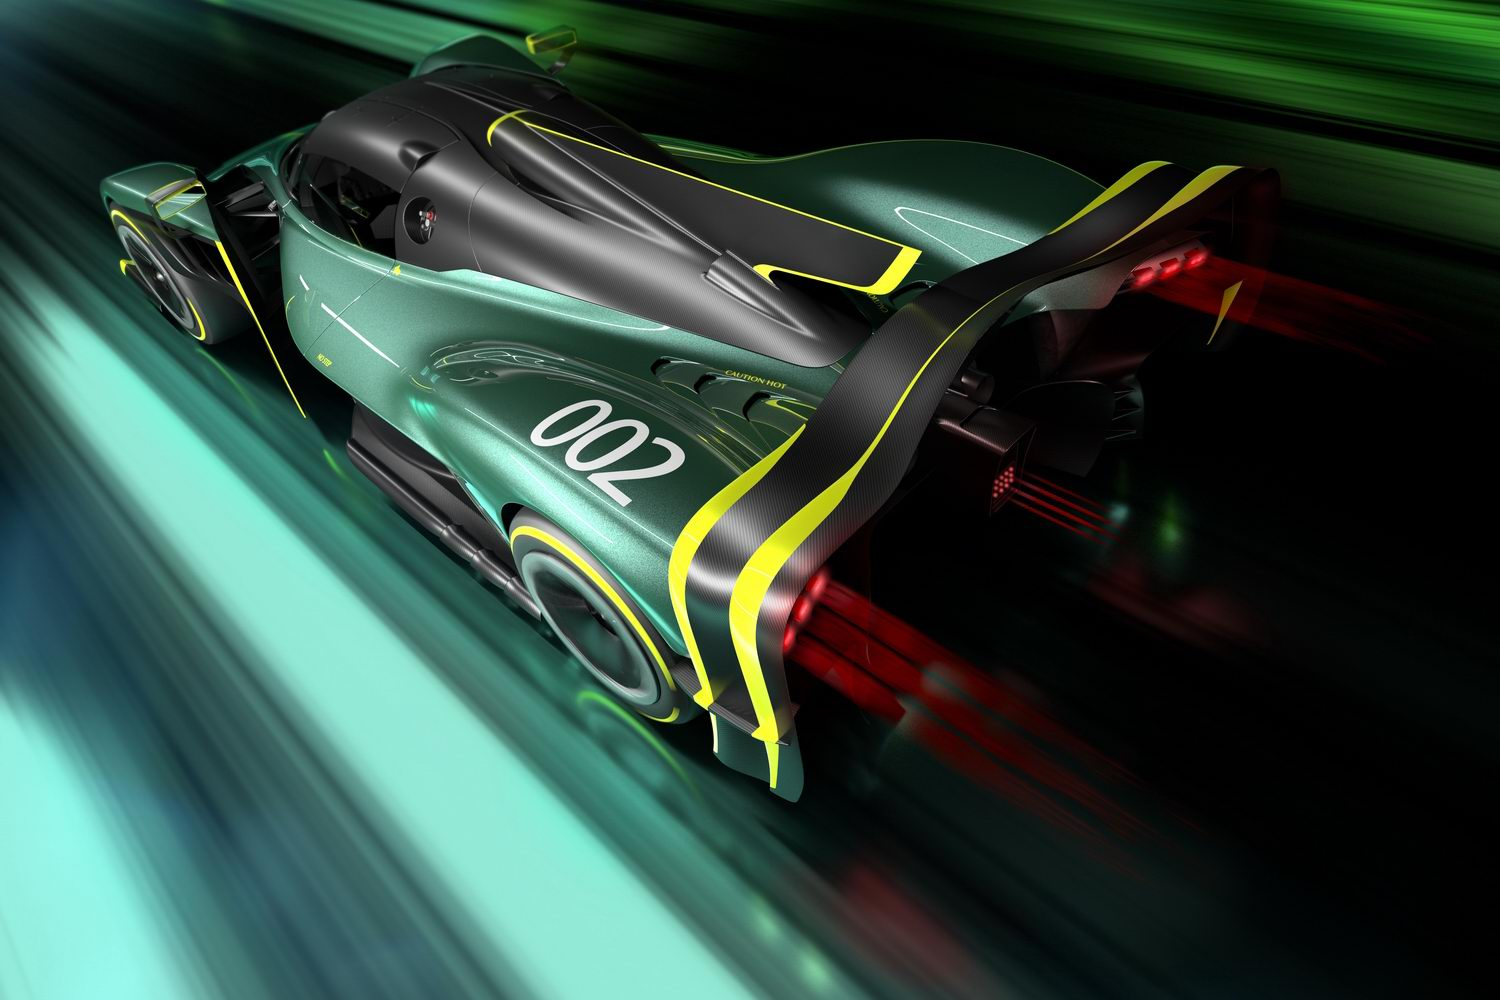 Car News | Aston Valkyrie AMR Pro too fast for Le Mans | CompleteCar.ie